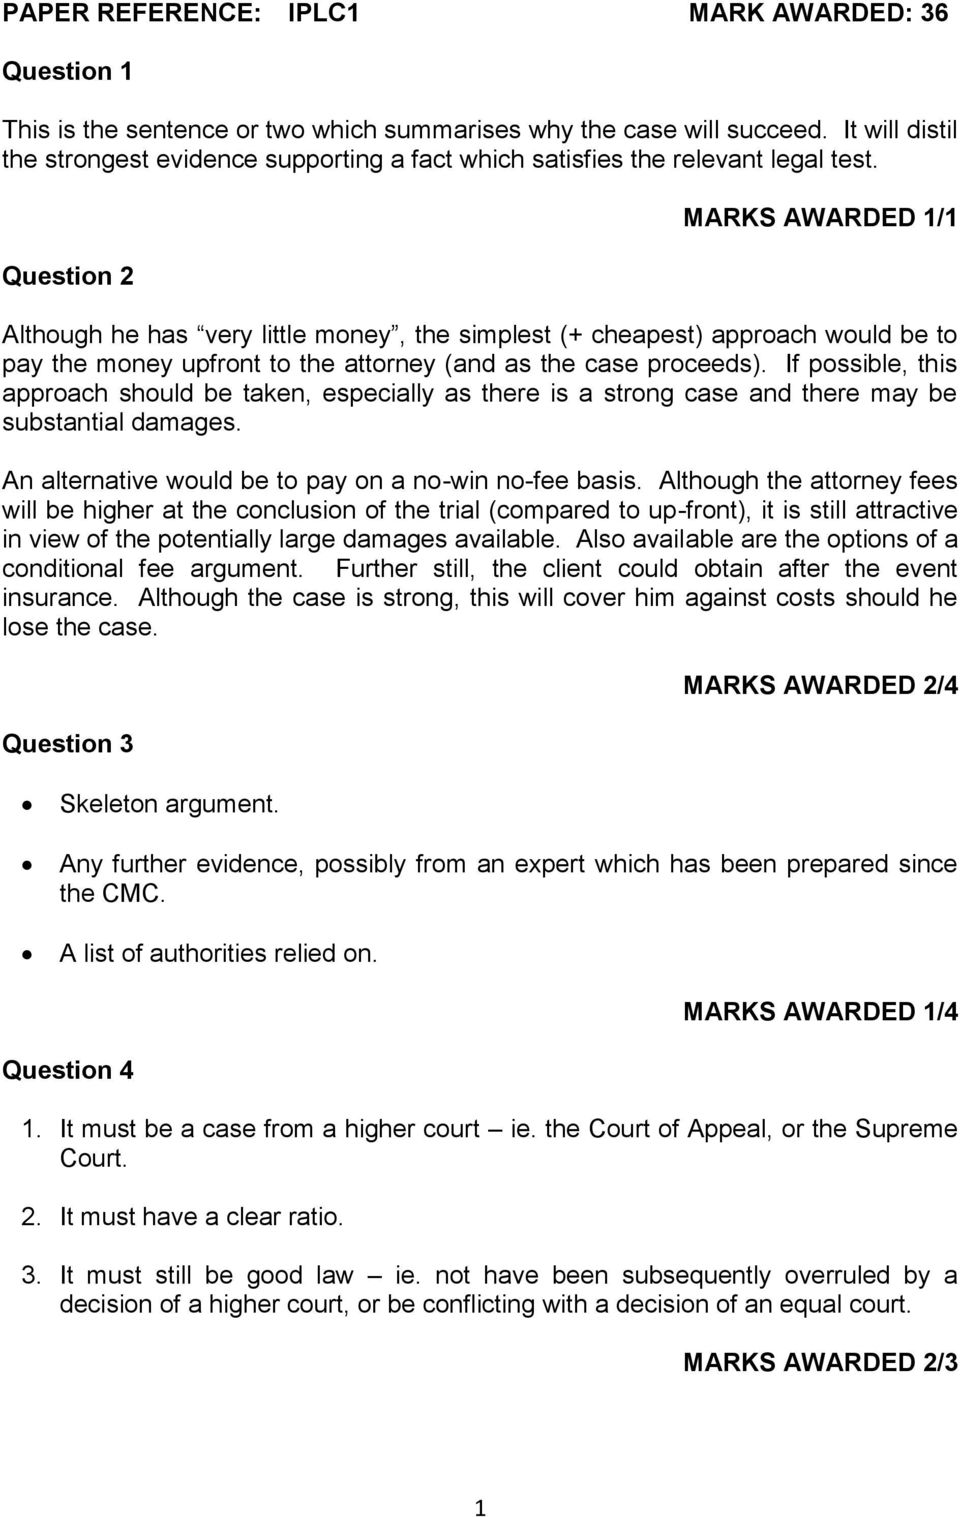 Question 2 MARKS AWARDED 1/1 Although he has very little money, the simplest (+ cheapest) approach would be to pay the money upfront to the attorney (and as the case proceeds).